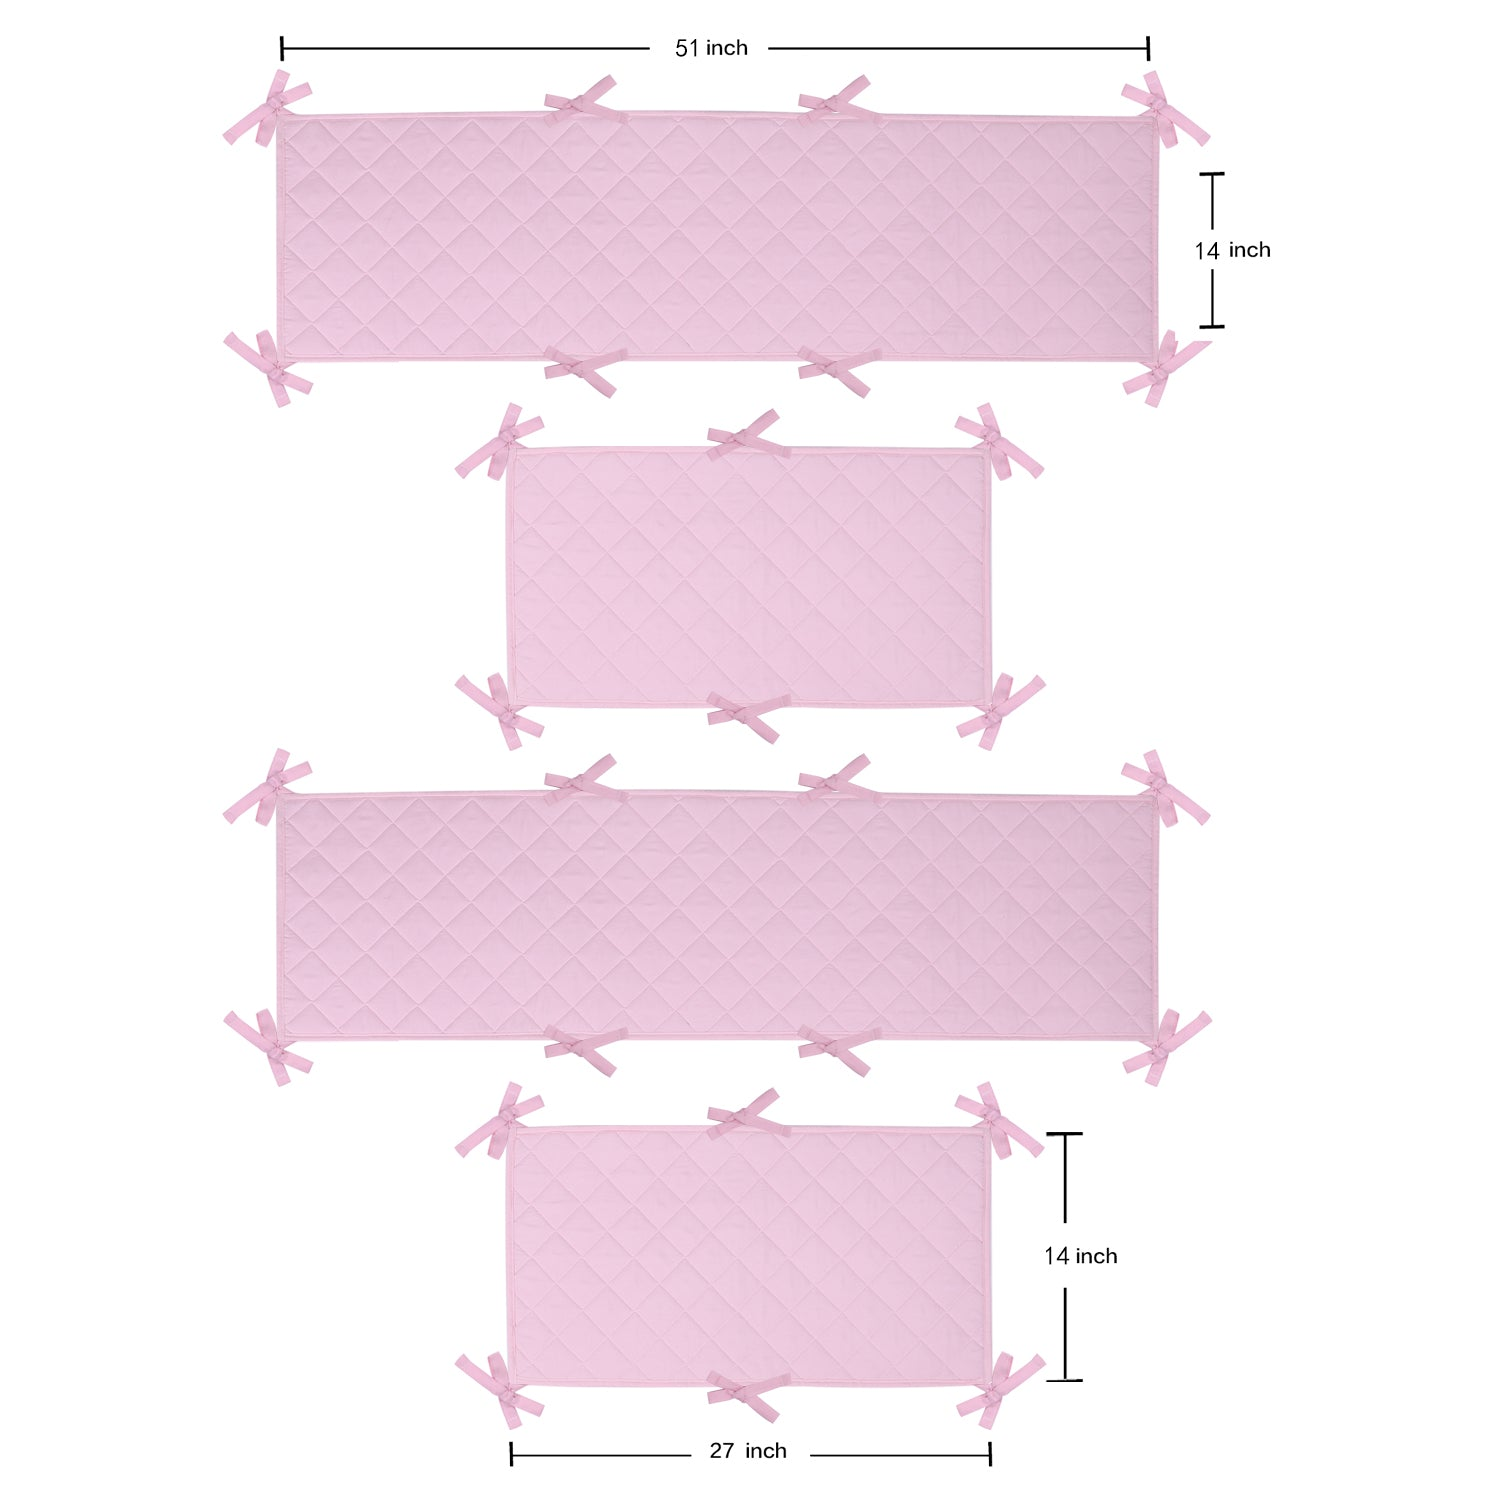 OUT OF STOCK - Microfiber Crib Bumper Quilted Pad - Pink